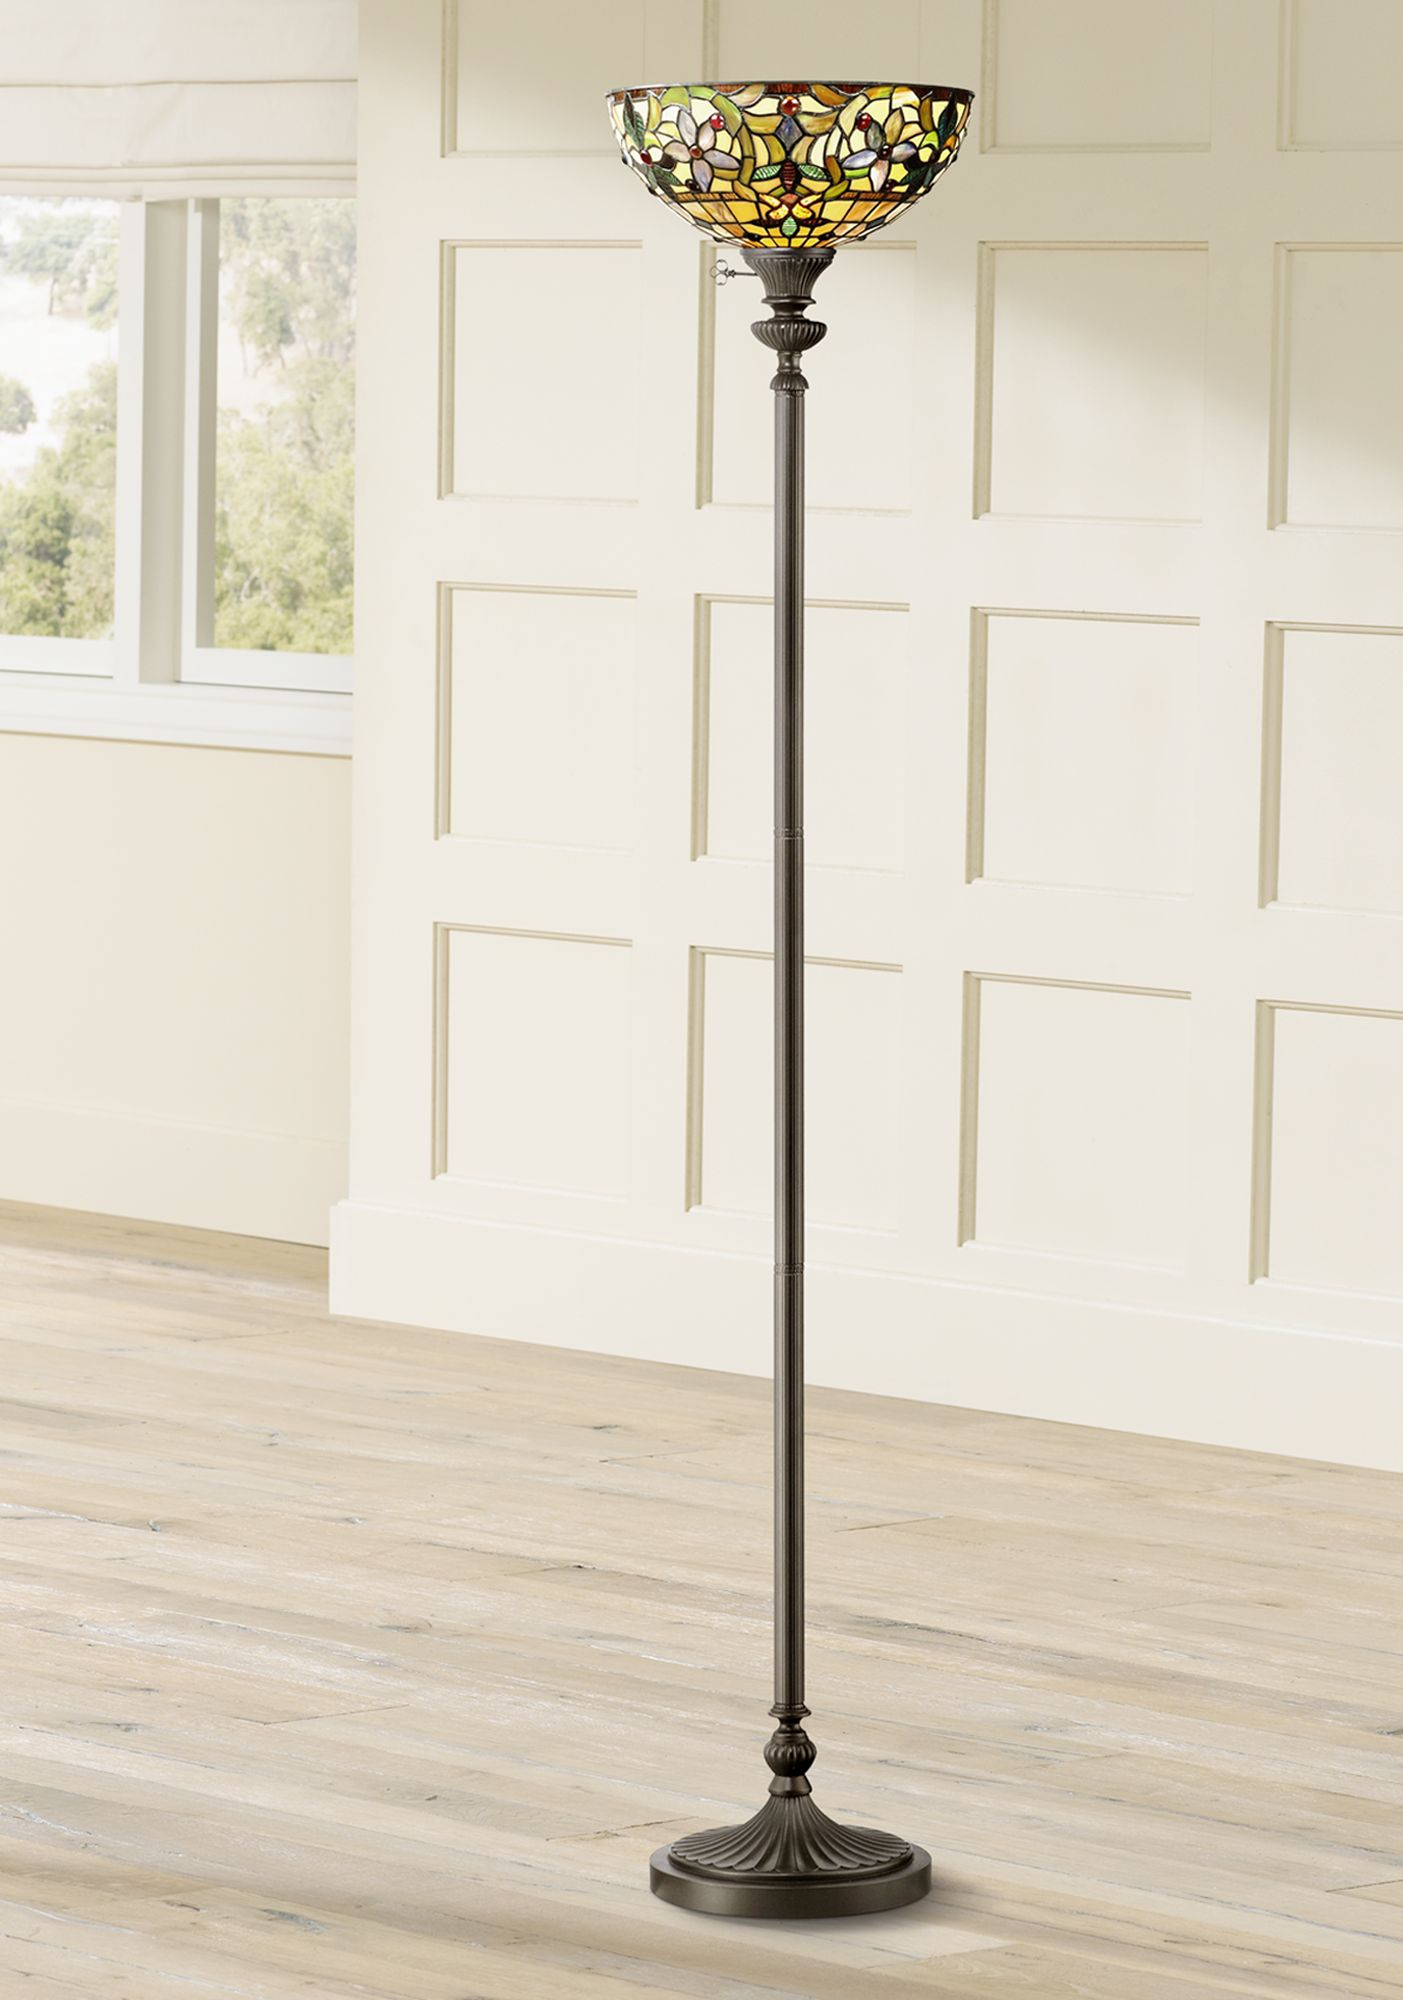 quoizel kami tiffany style torchiere floor lamp